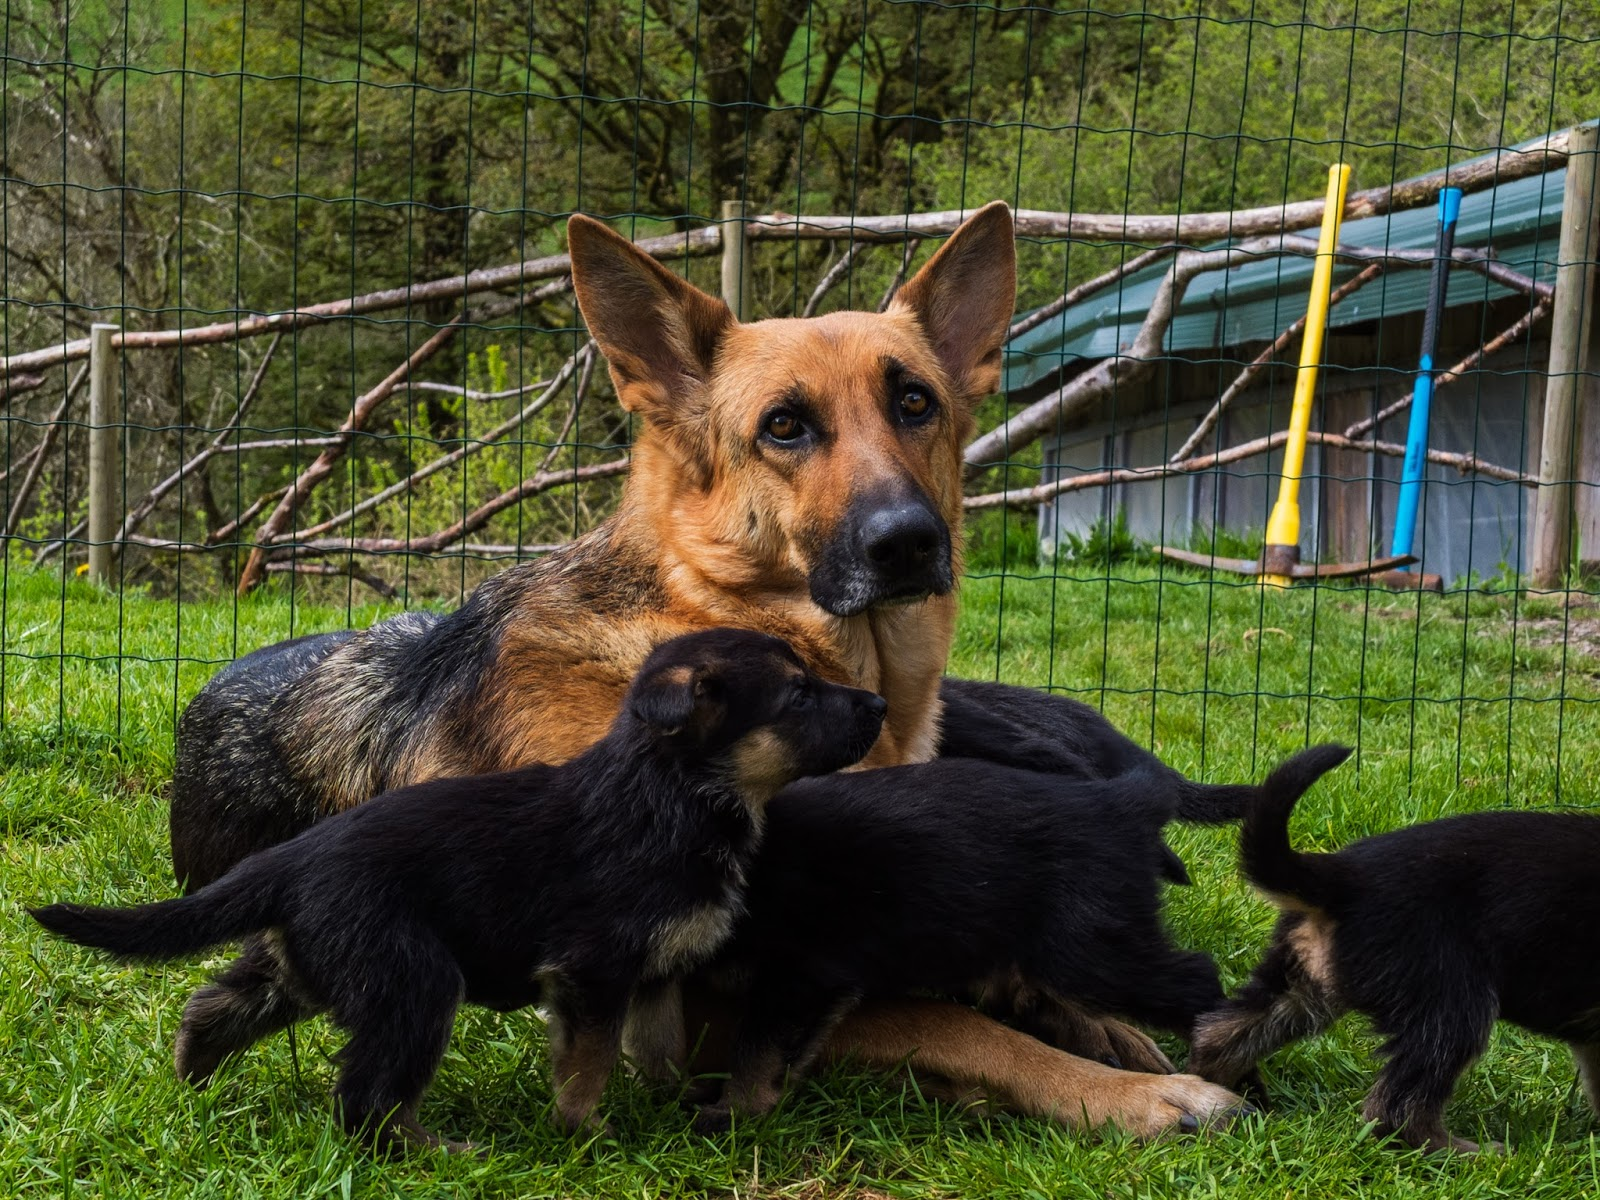 German Shepherd mom with her 4 week old pups outside in the grass.